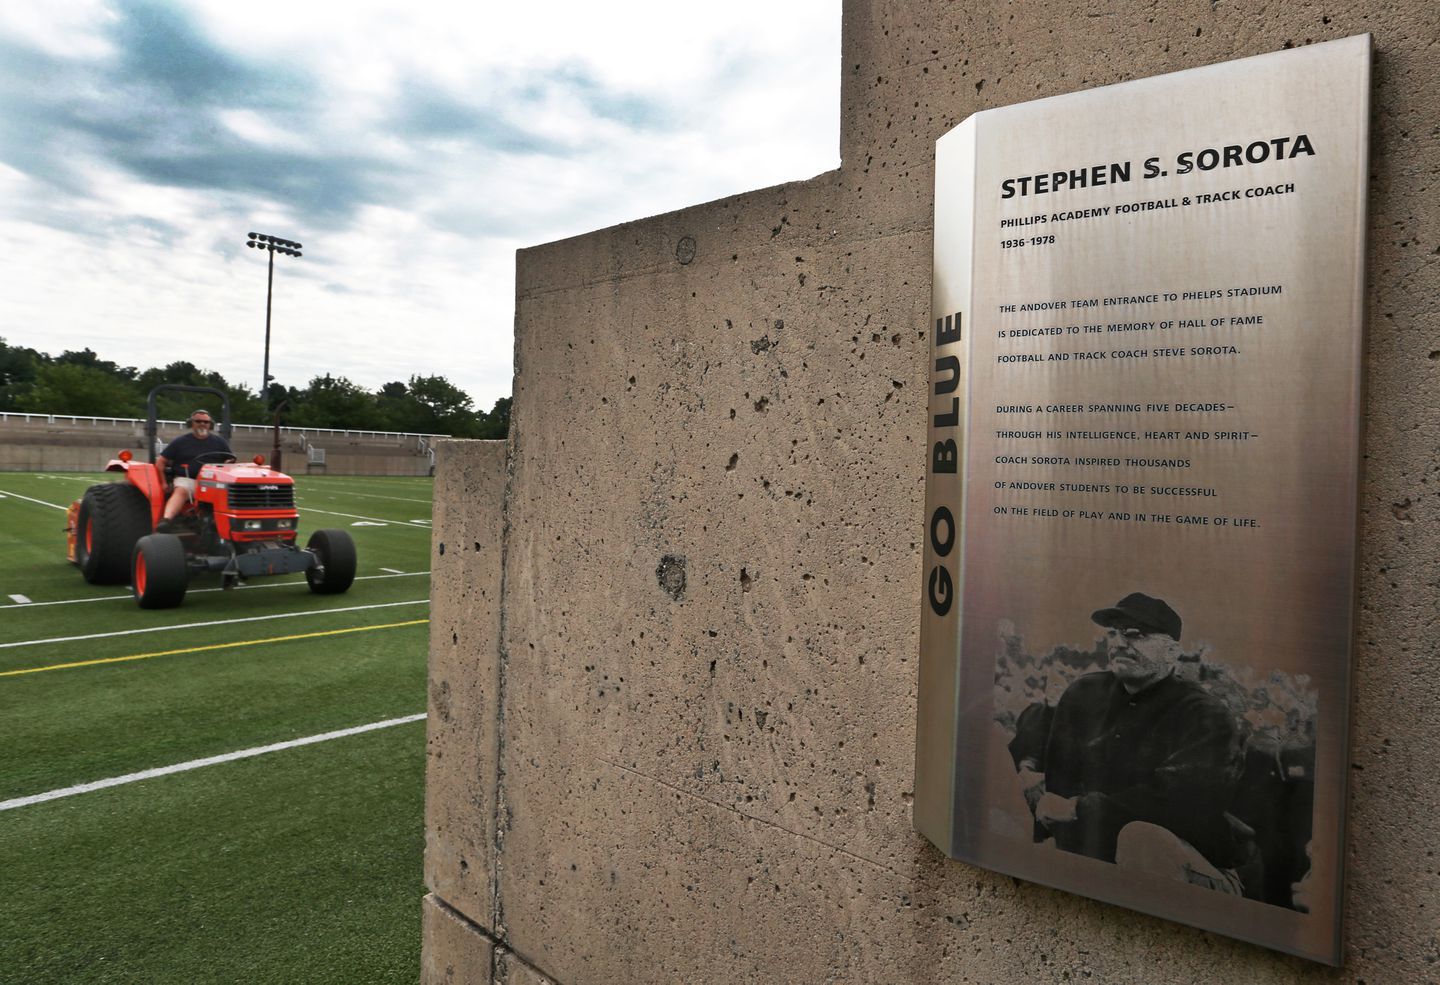 A plaque at the Phillips Academy football field honors Steve Sorota.